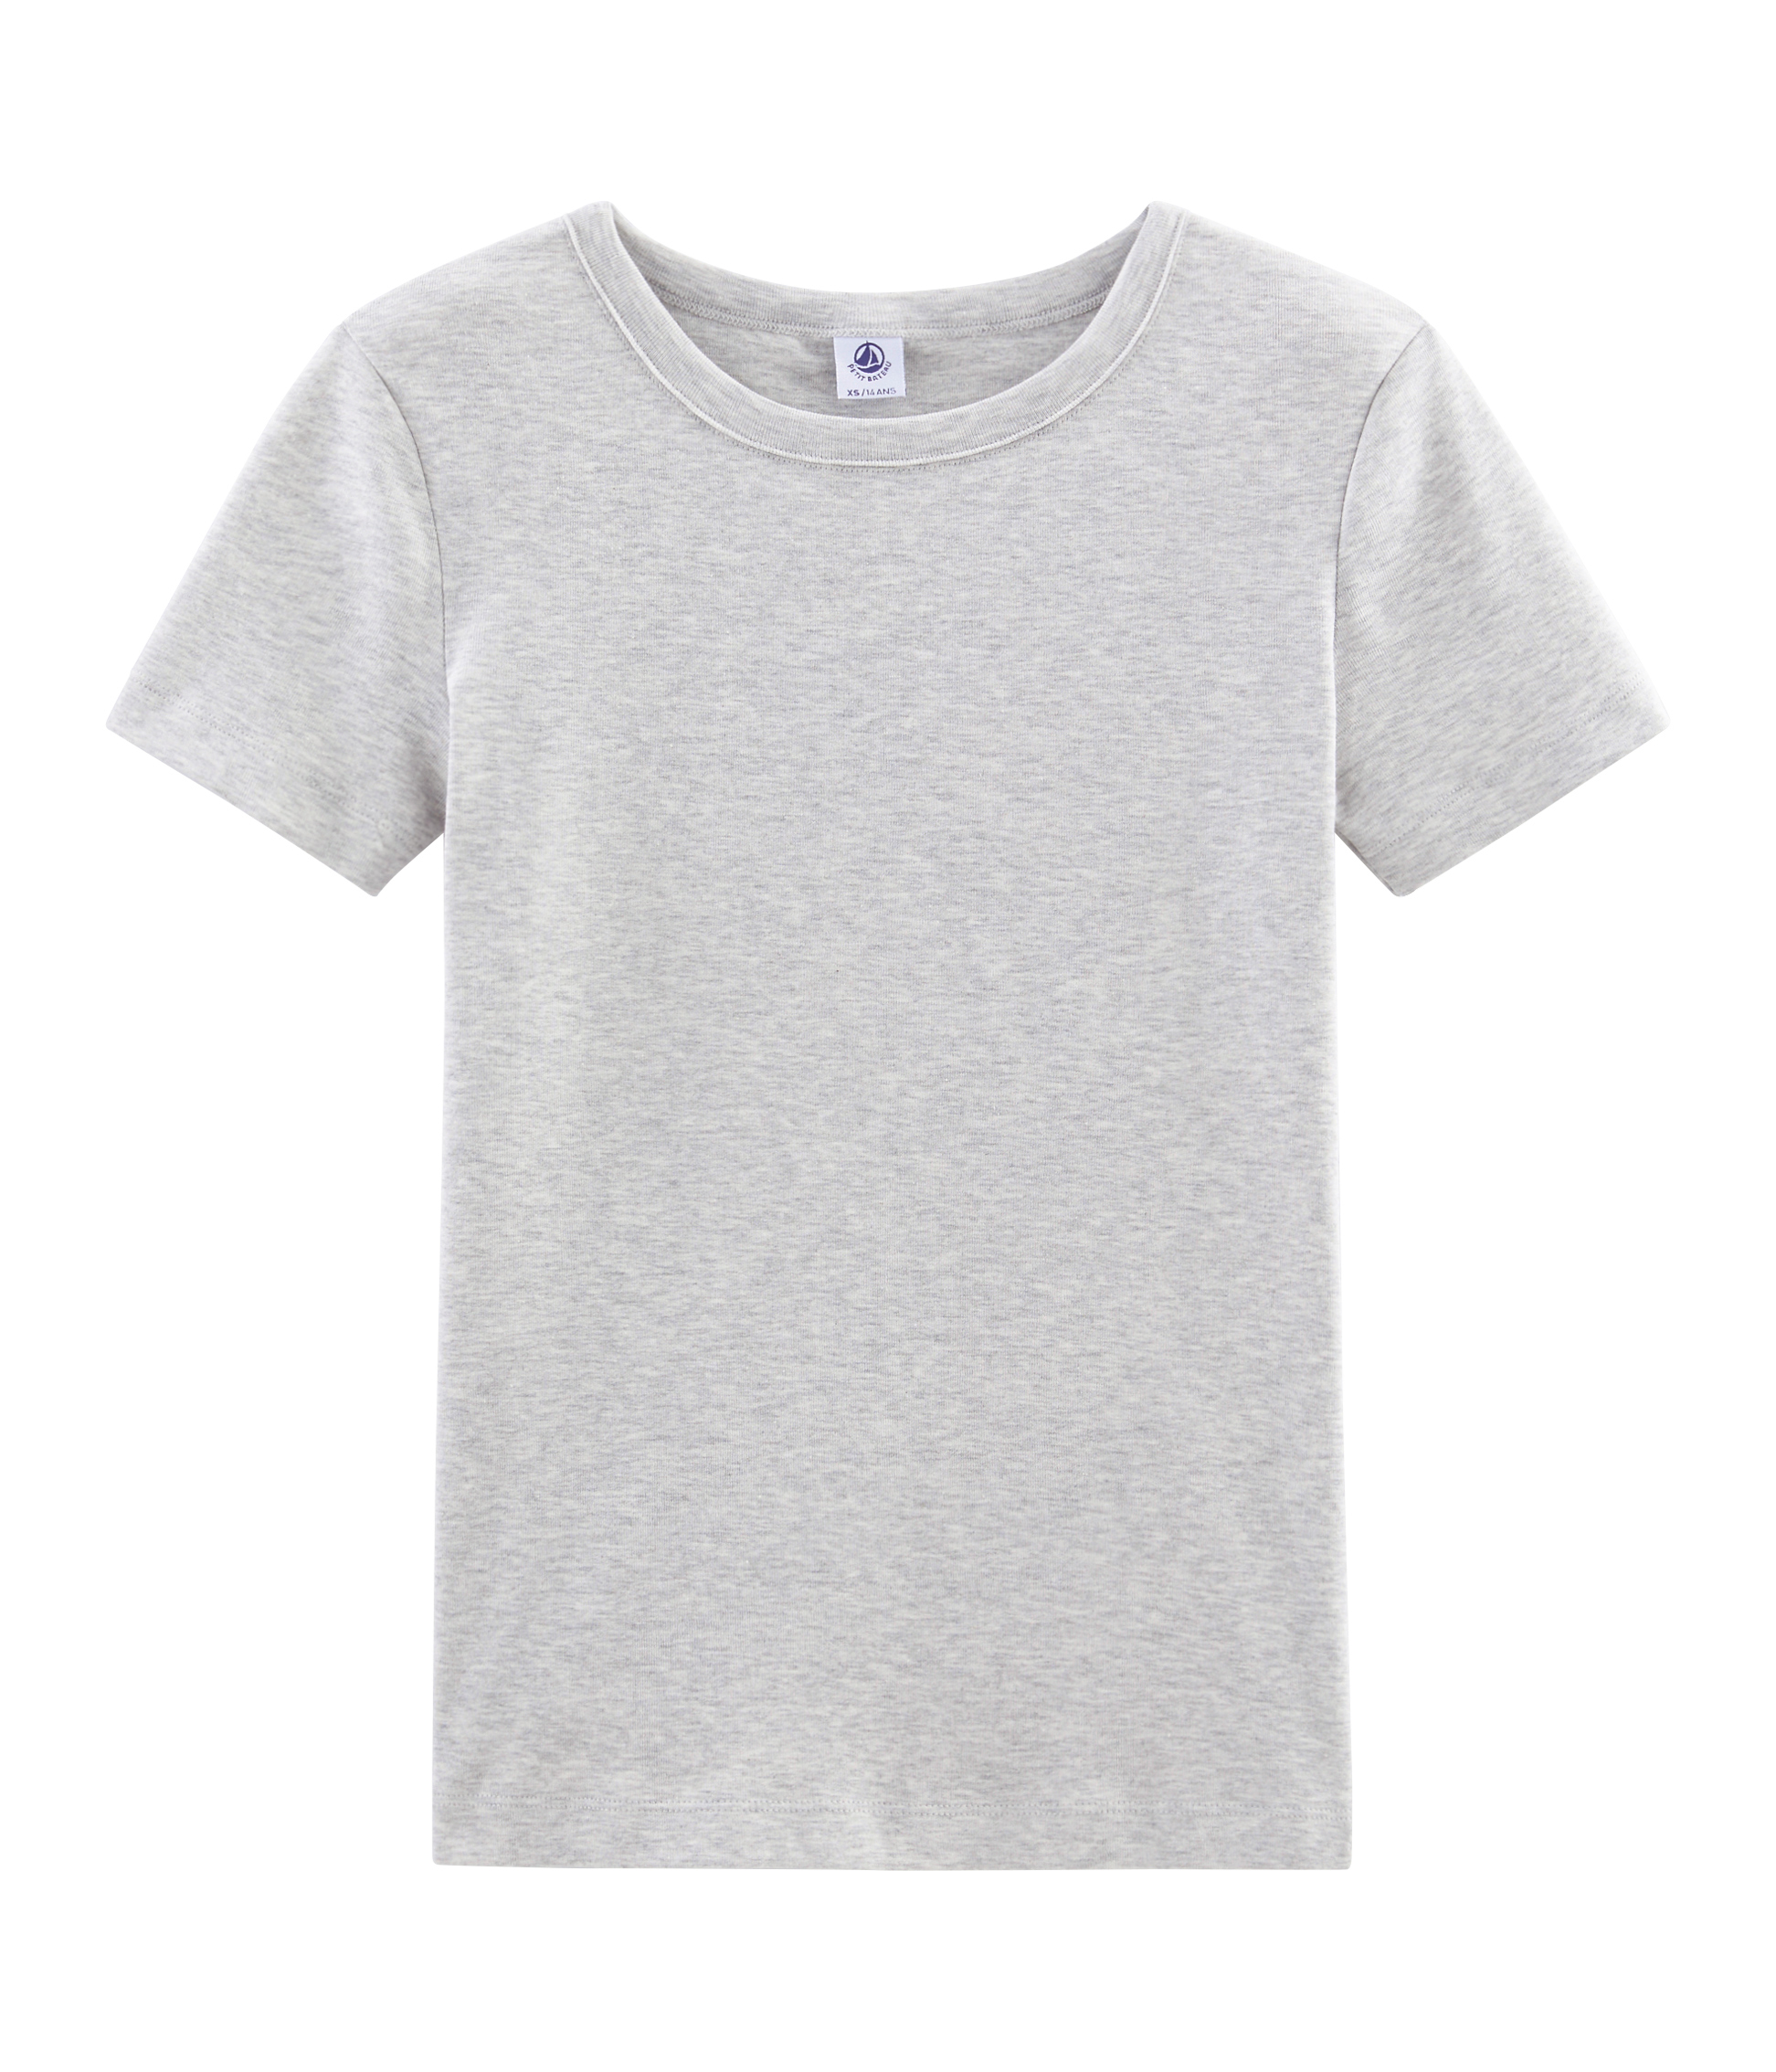 Tee shirt iconique femme